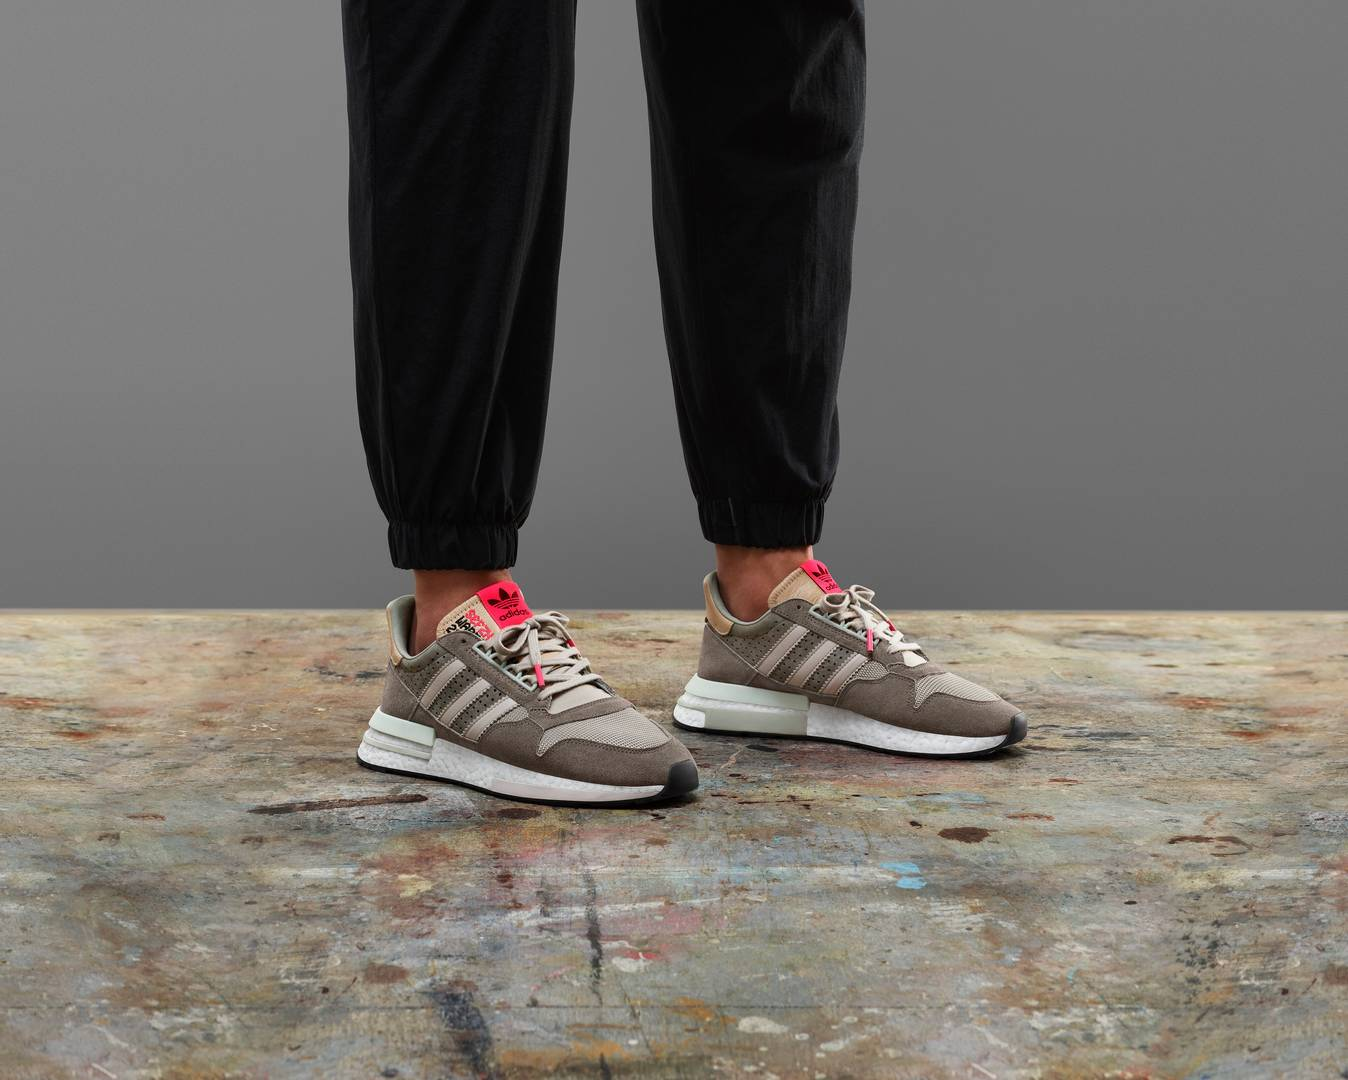 c4ede0f8c2840 Adidas Reveals Special Edition ZX4000 4D And ZX500 RM  Release Info